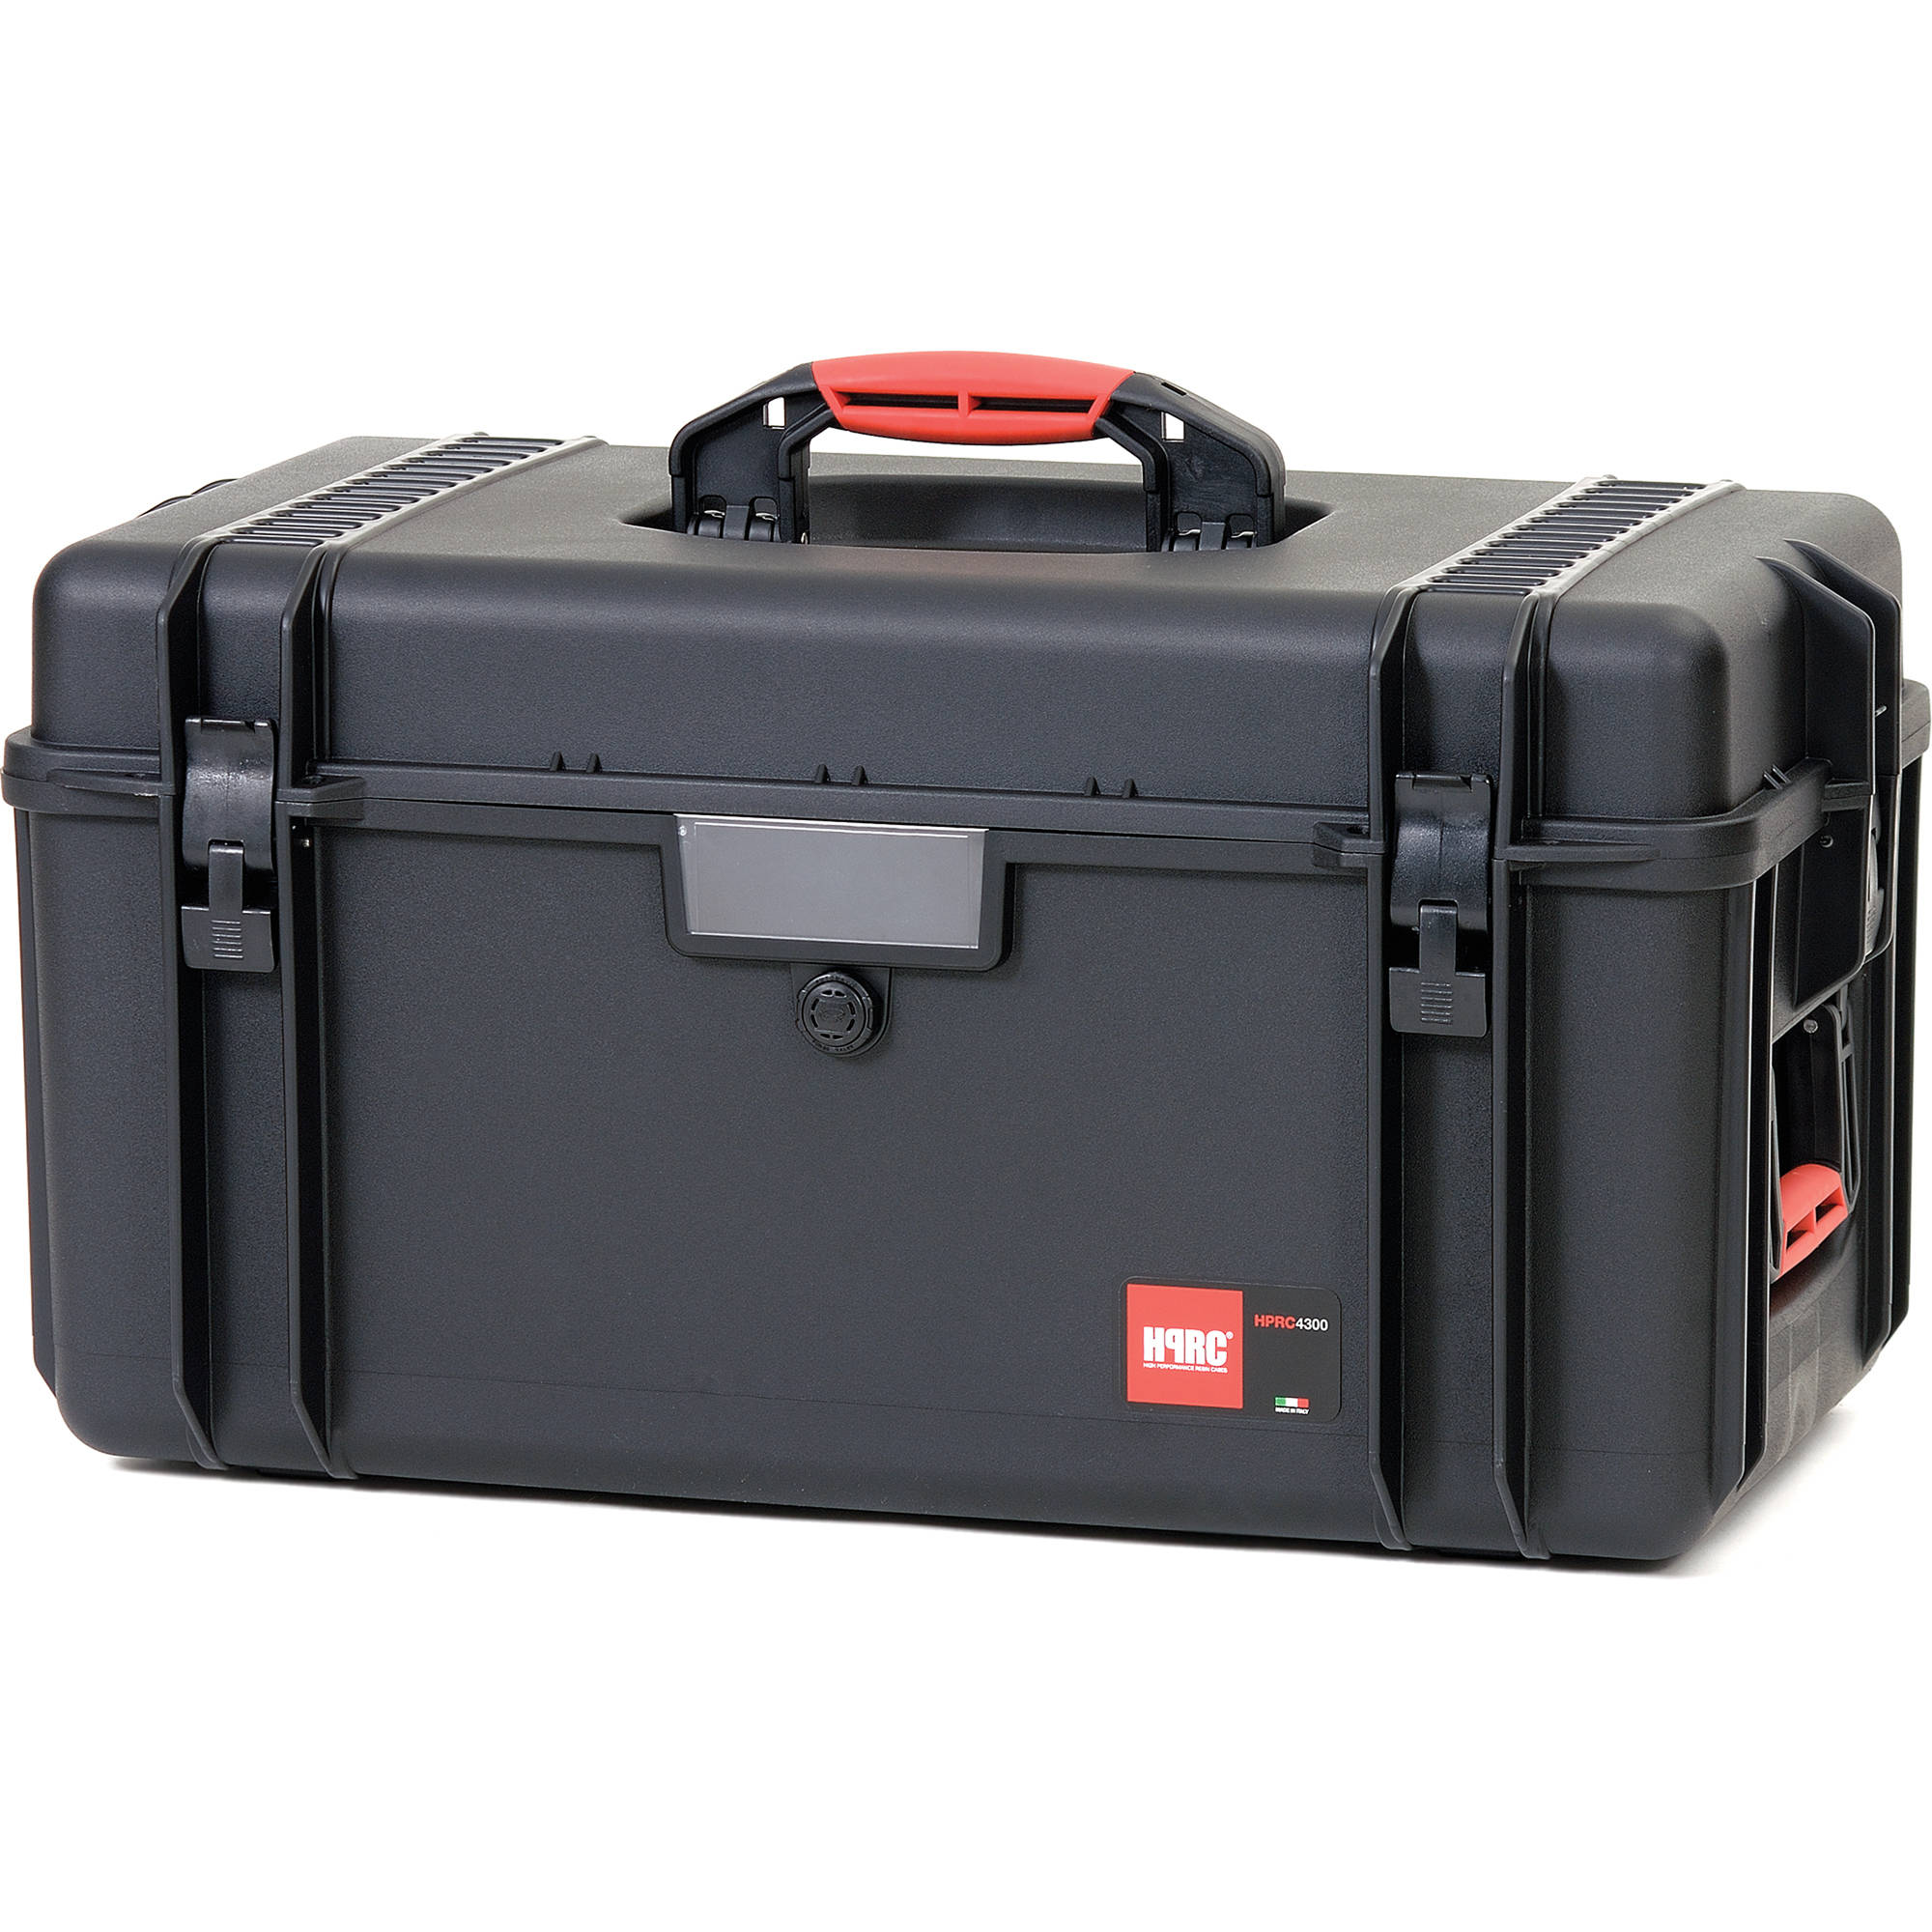 e538fd9008c1 HPRC 4300 Resin Case with Soft, Padded Open Deck and Dividers Kit